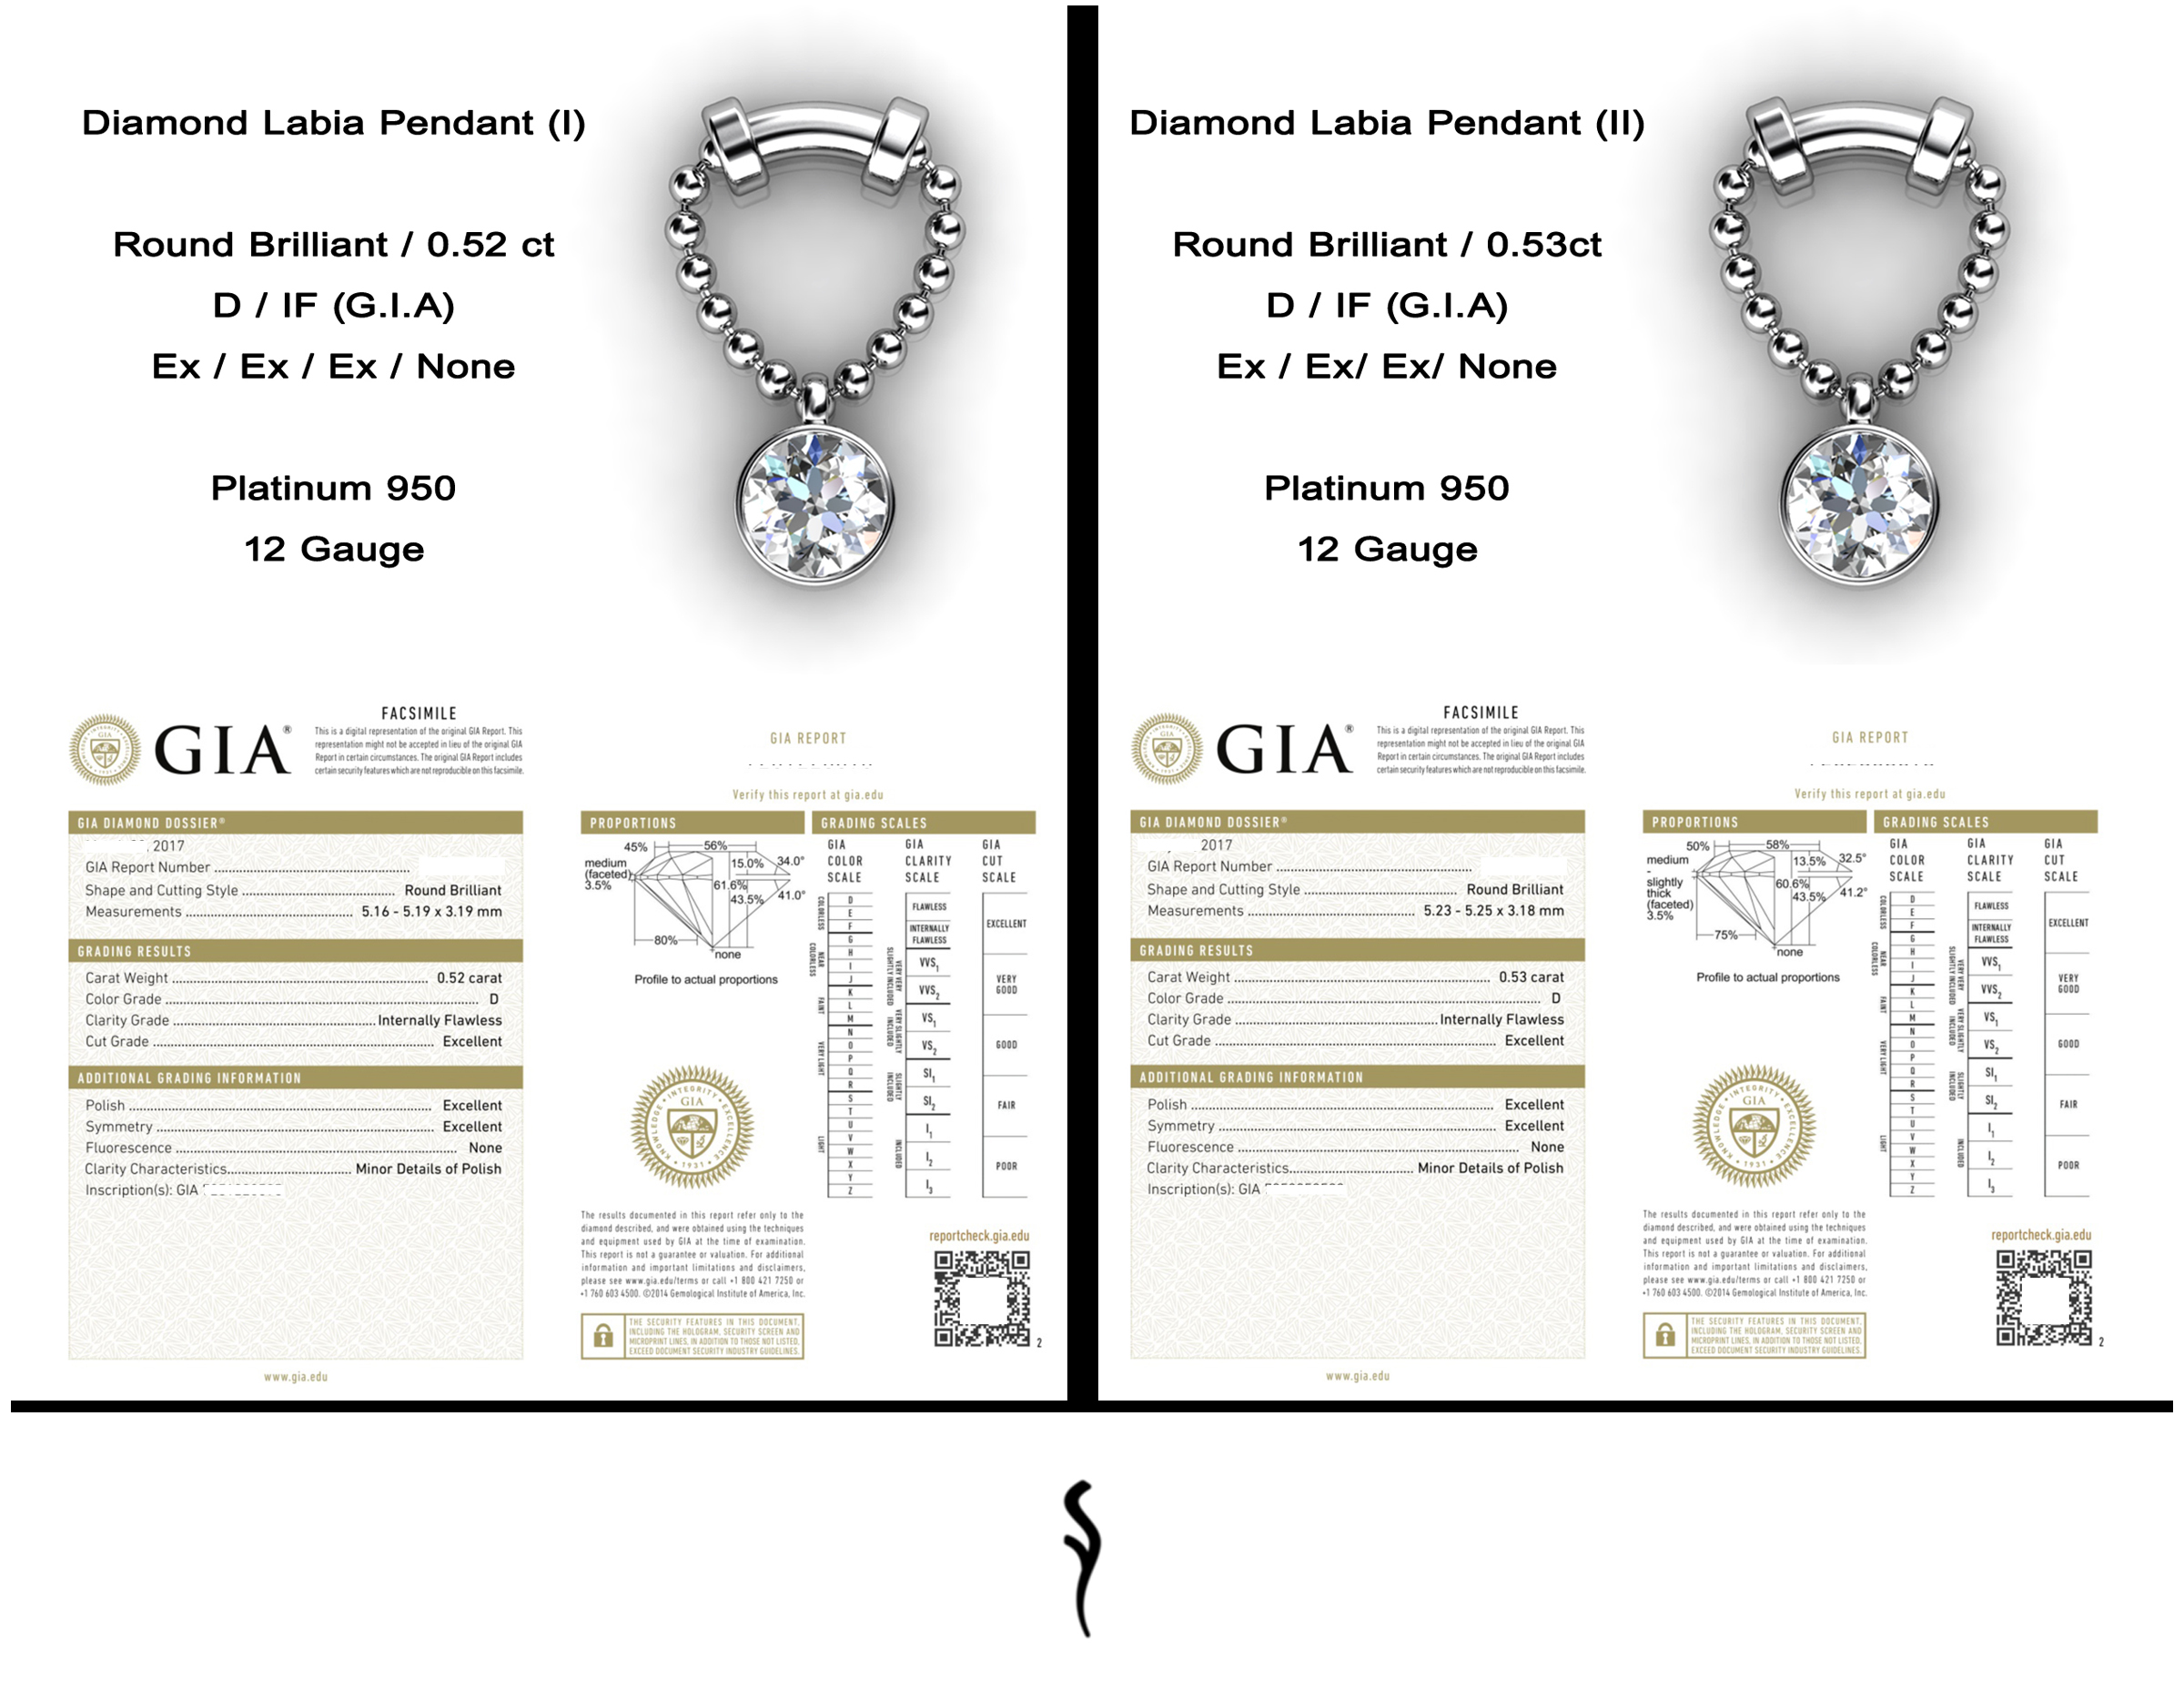 Diamond Labia Pendants  Natural Brilliant-Cut Diamonds • D / Internally Flawless (G.I.A) • Platinum (Pt.950)